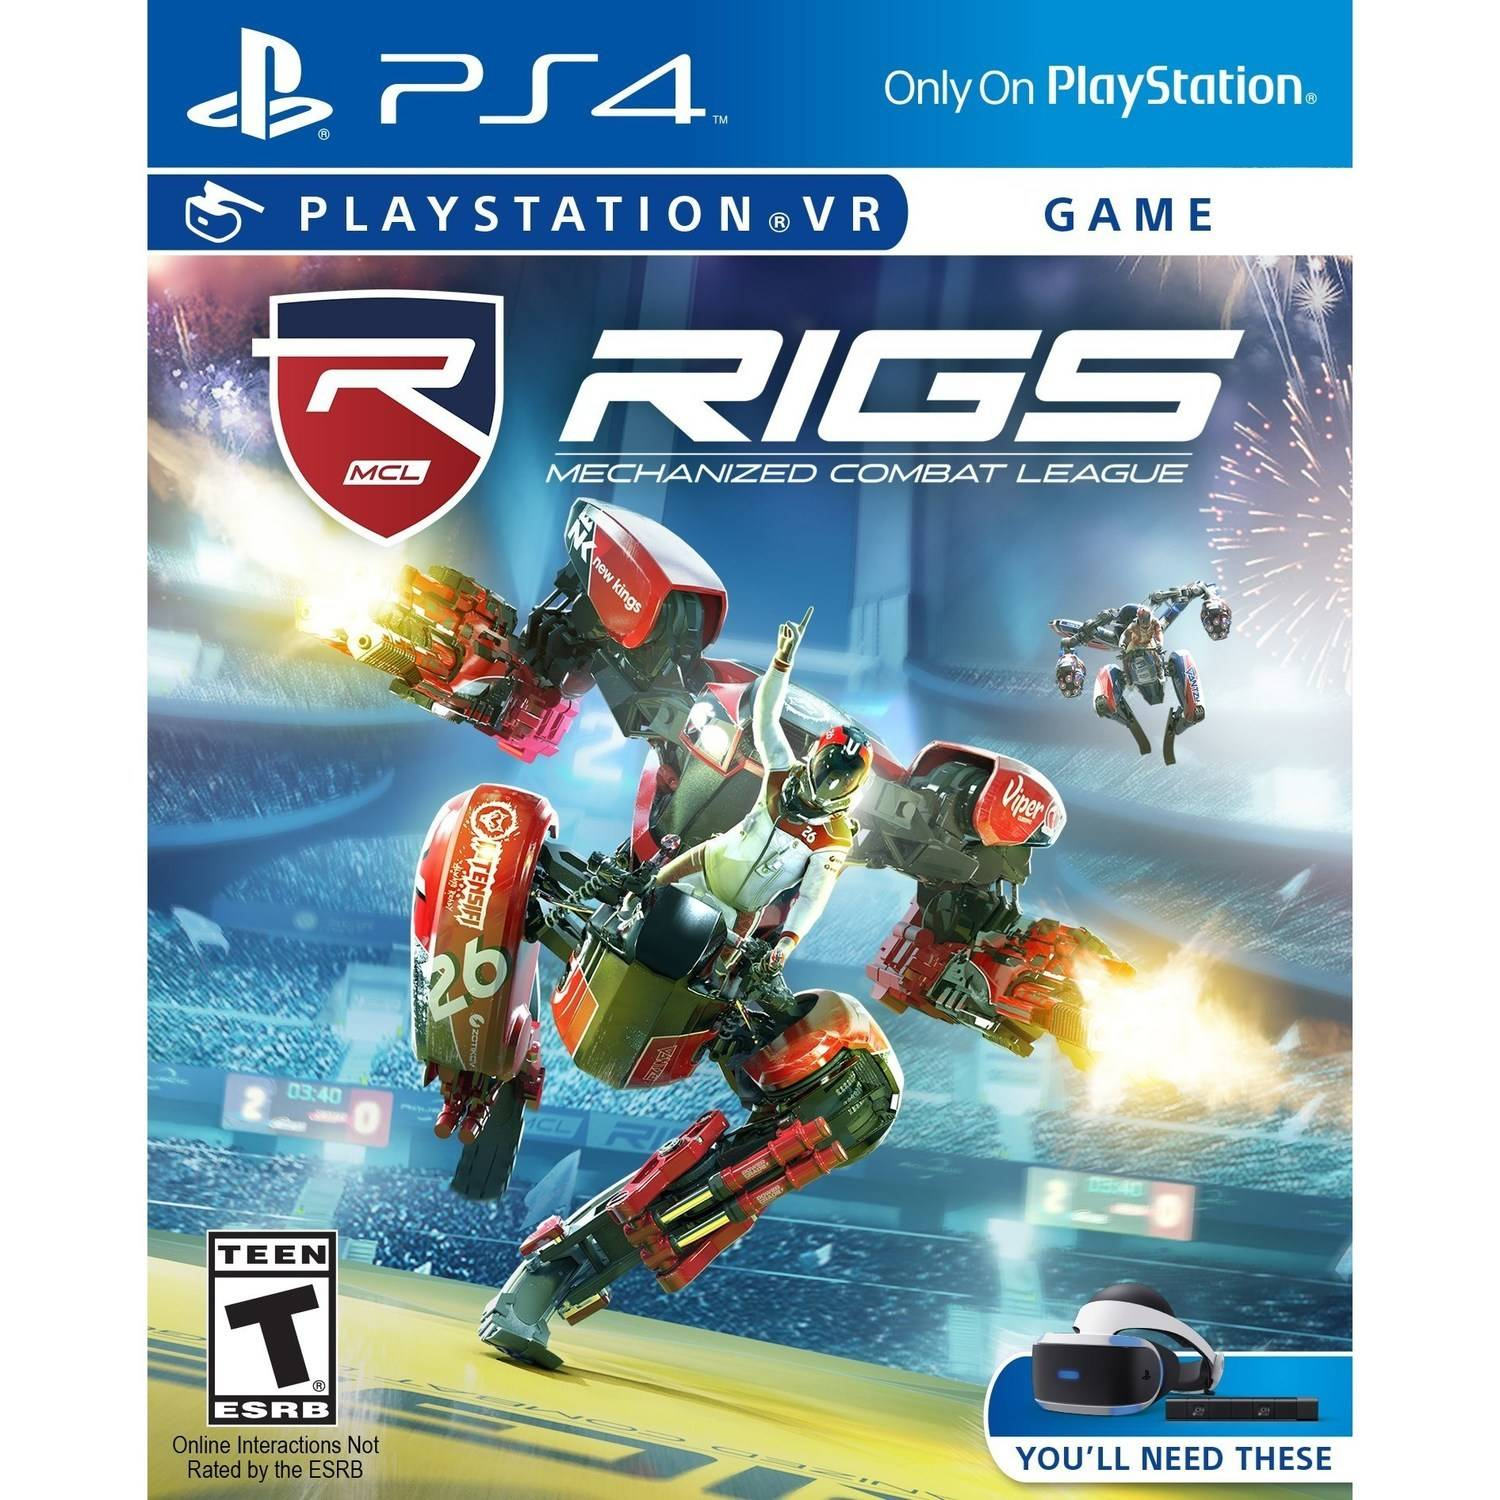 RIGS: Mechanized Combat League (PlayStation VR)